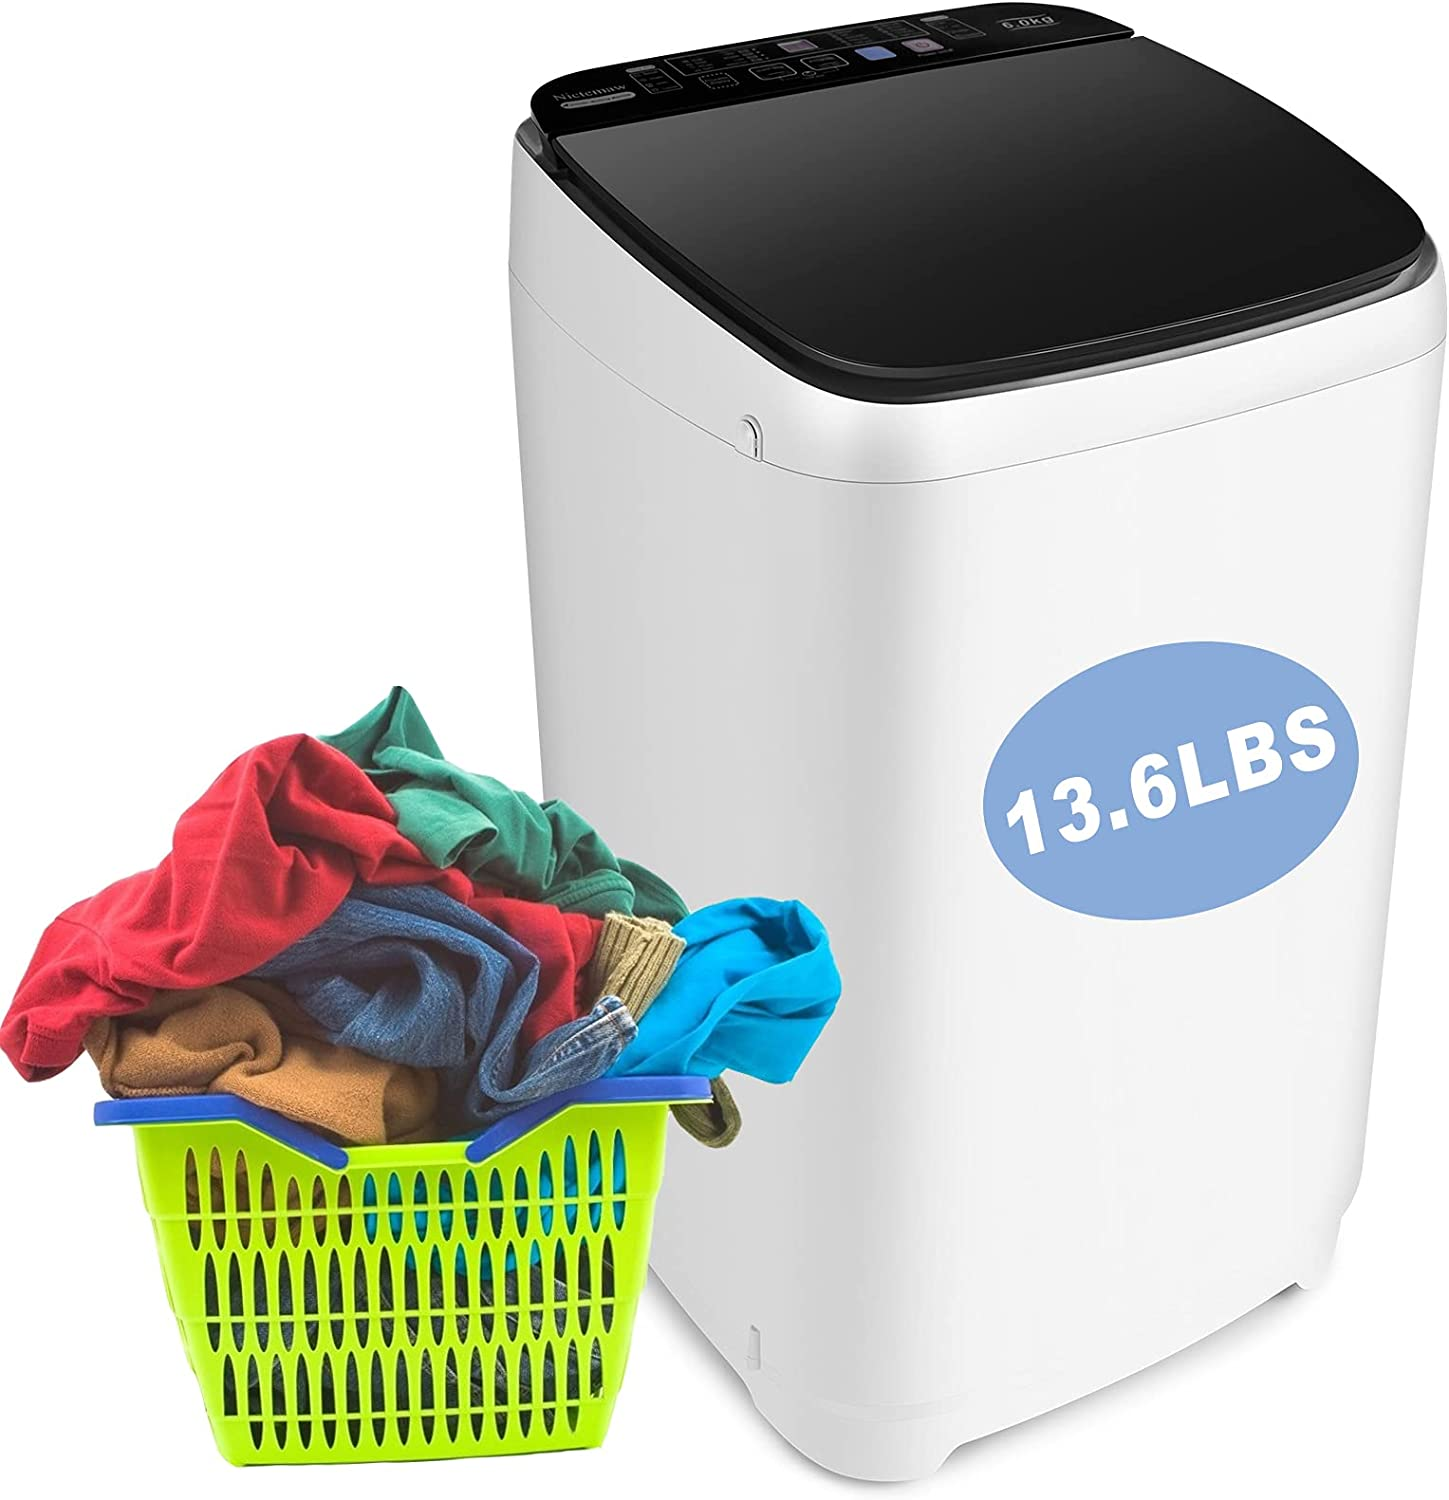 Portable Popular overseas Washing Max 74% OFF Machine Clothes Machines 1.4 Nictemaw